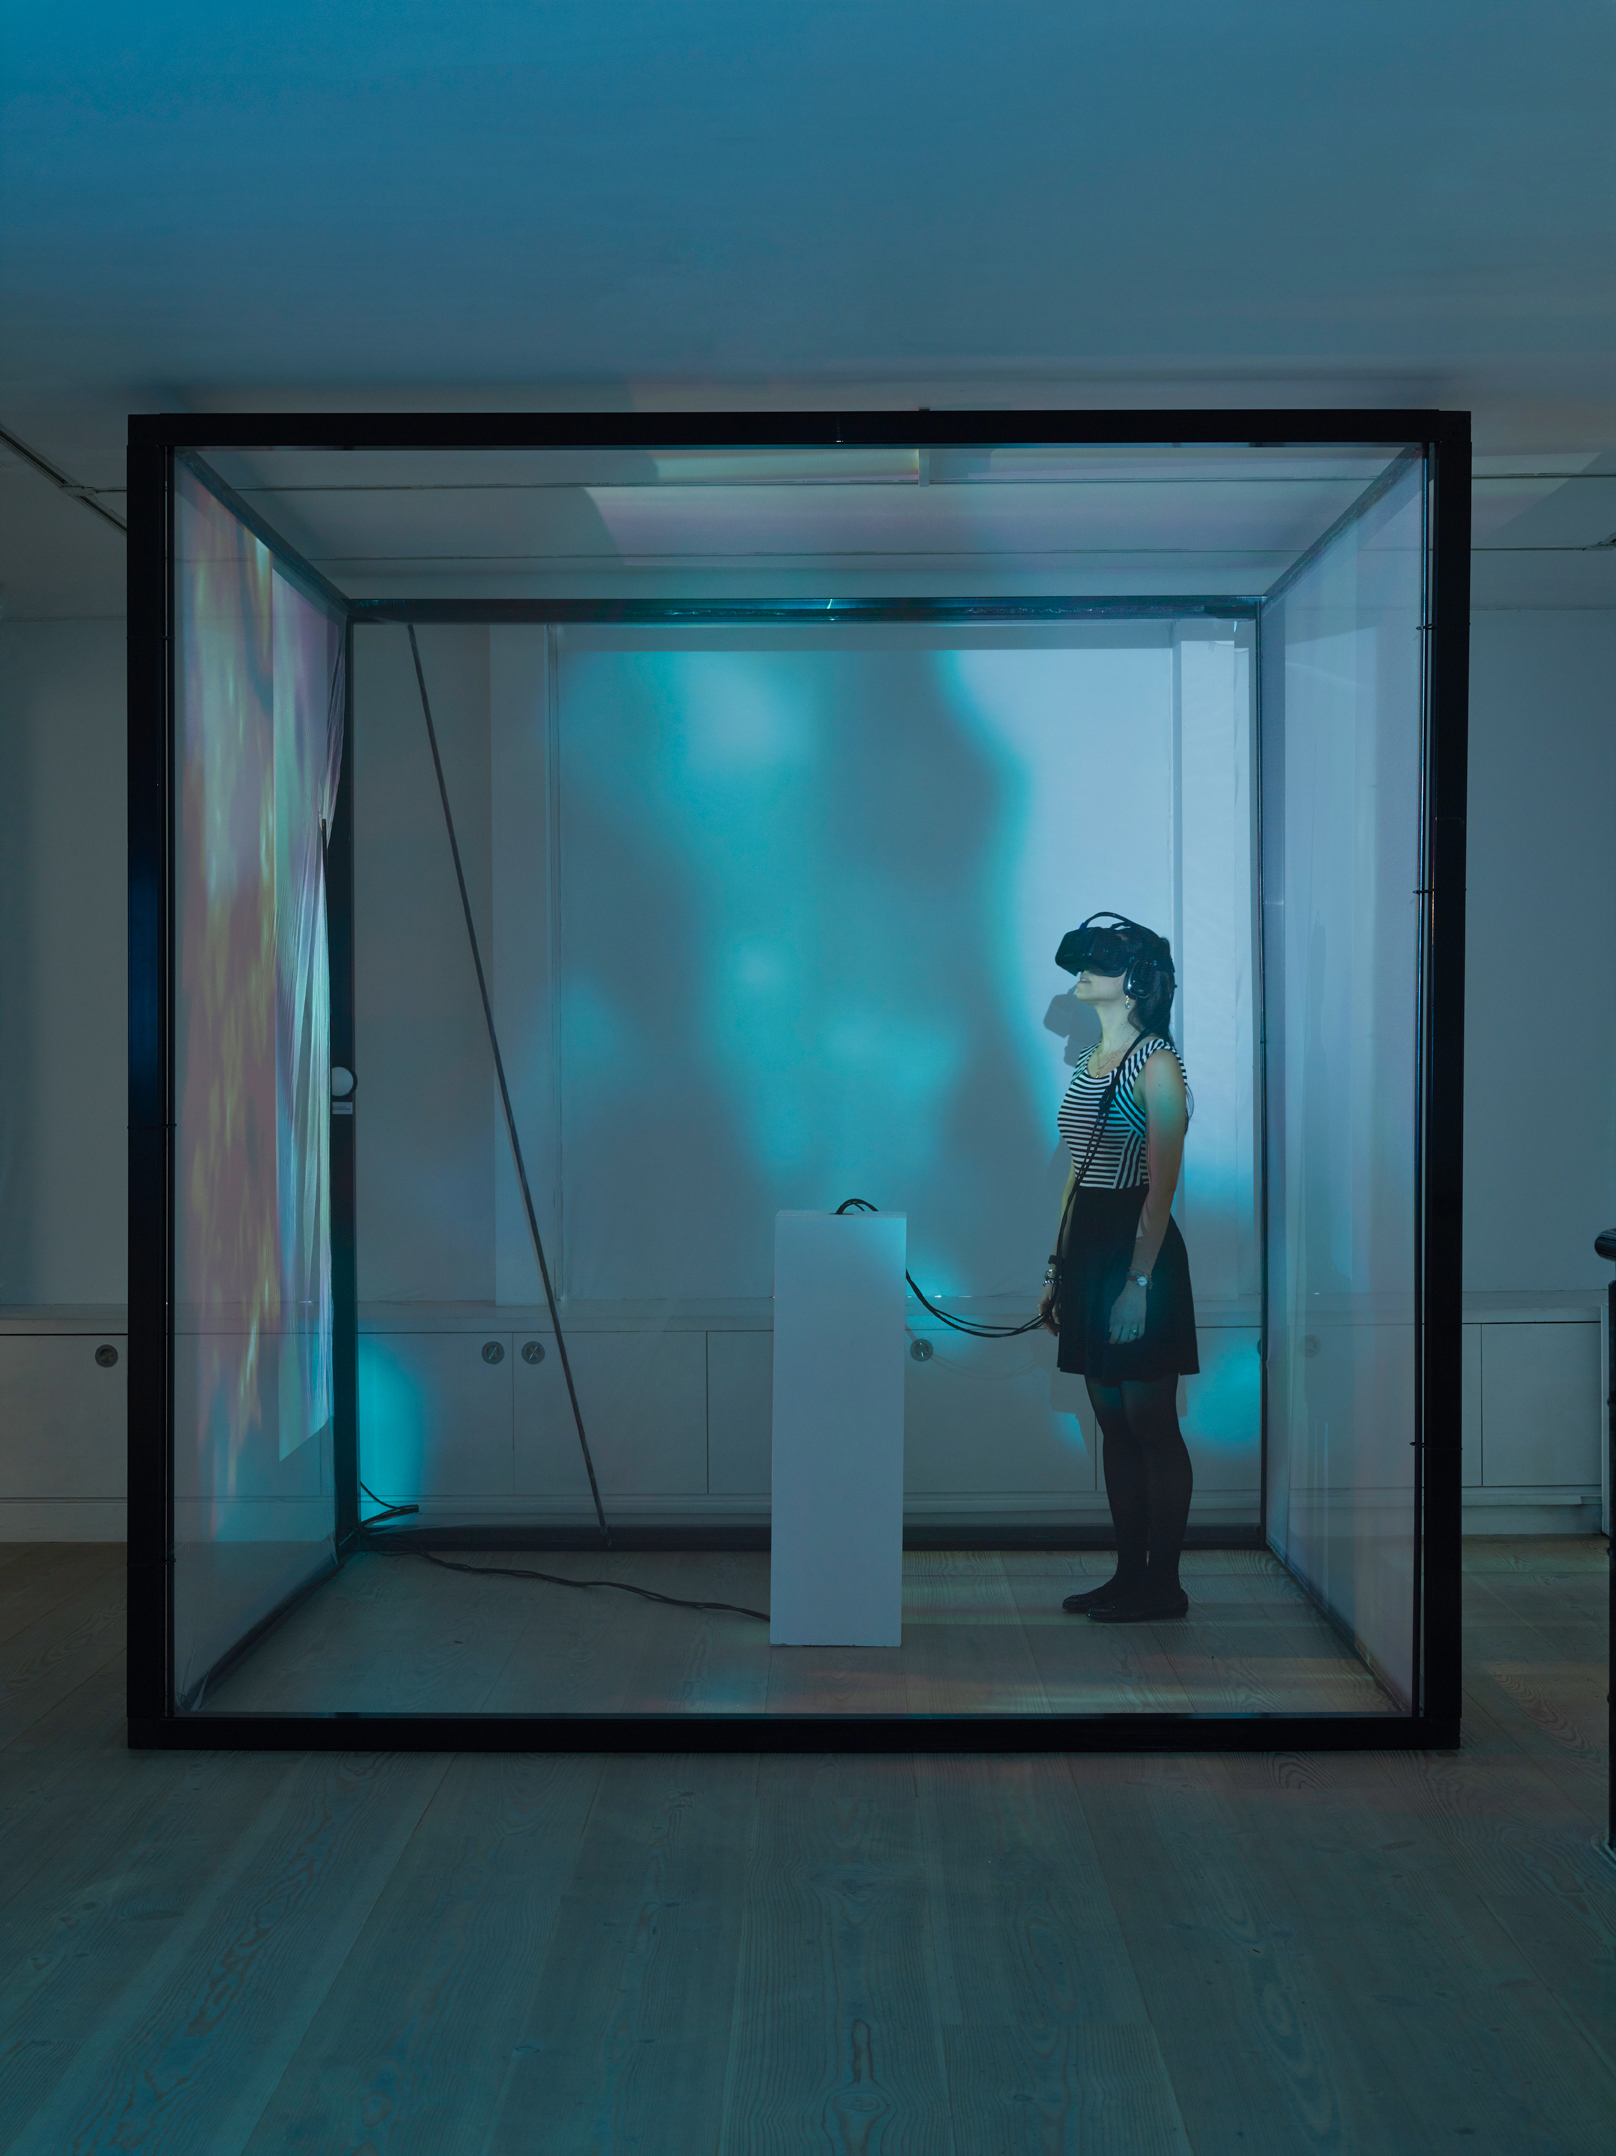 D Virtual Reality Exhibition : New exhibition by artists working in vr opens london